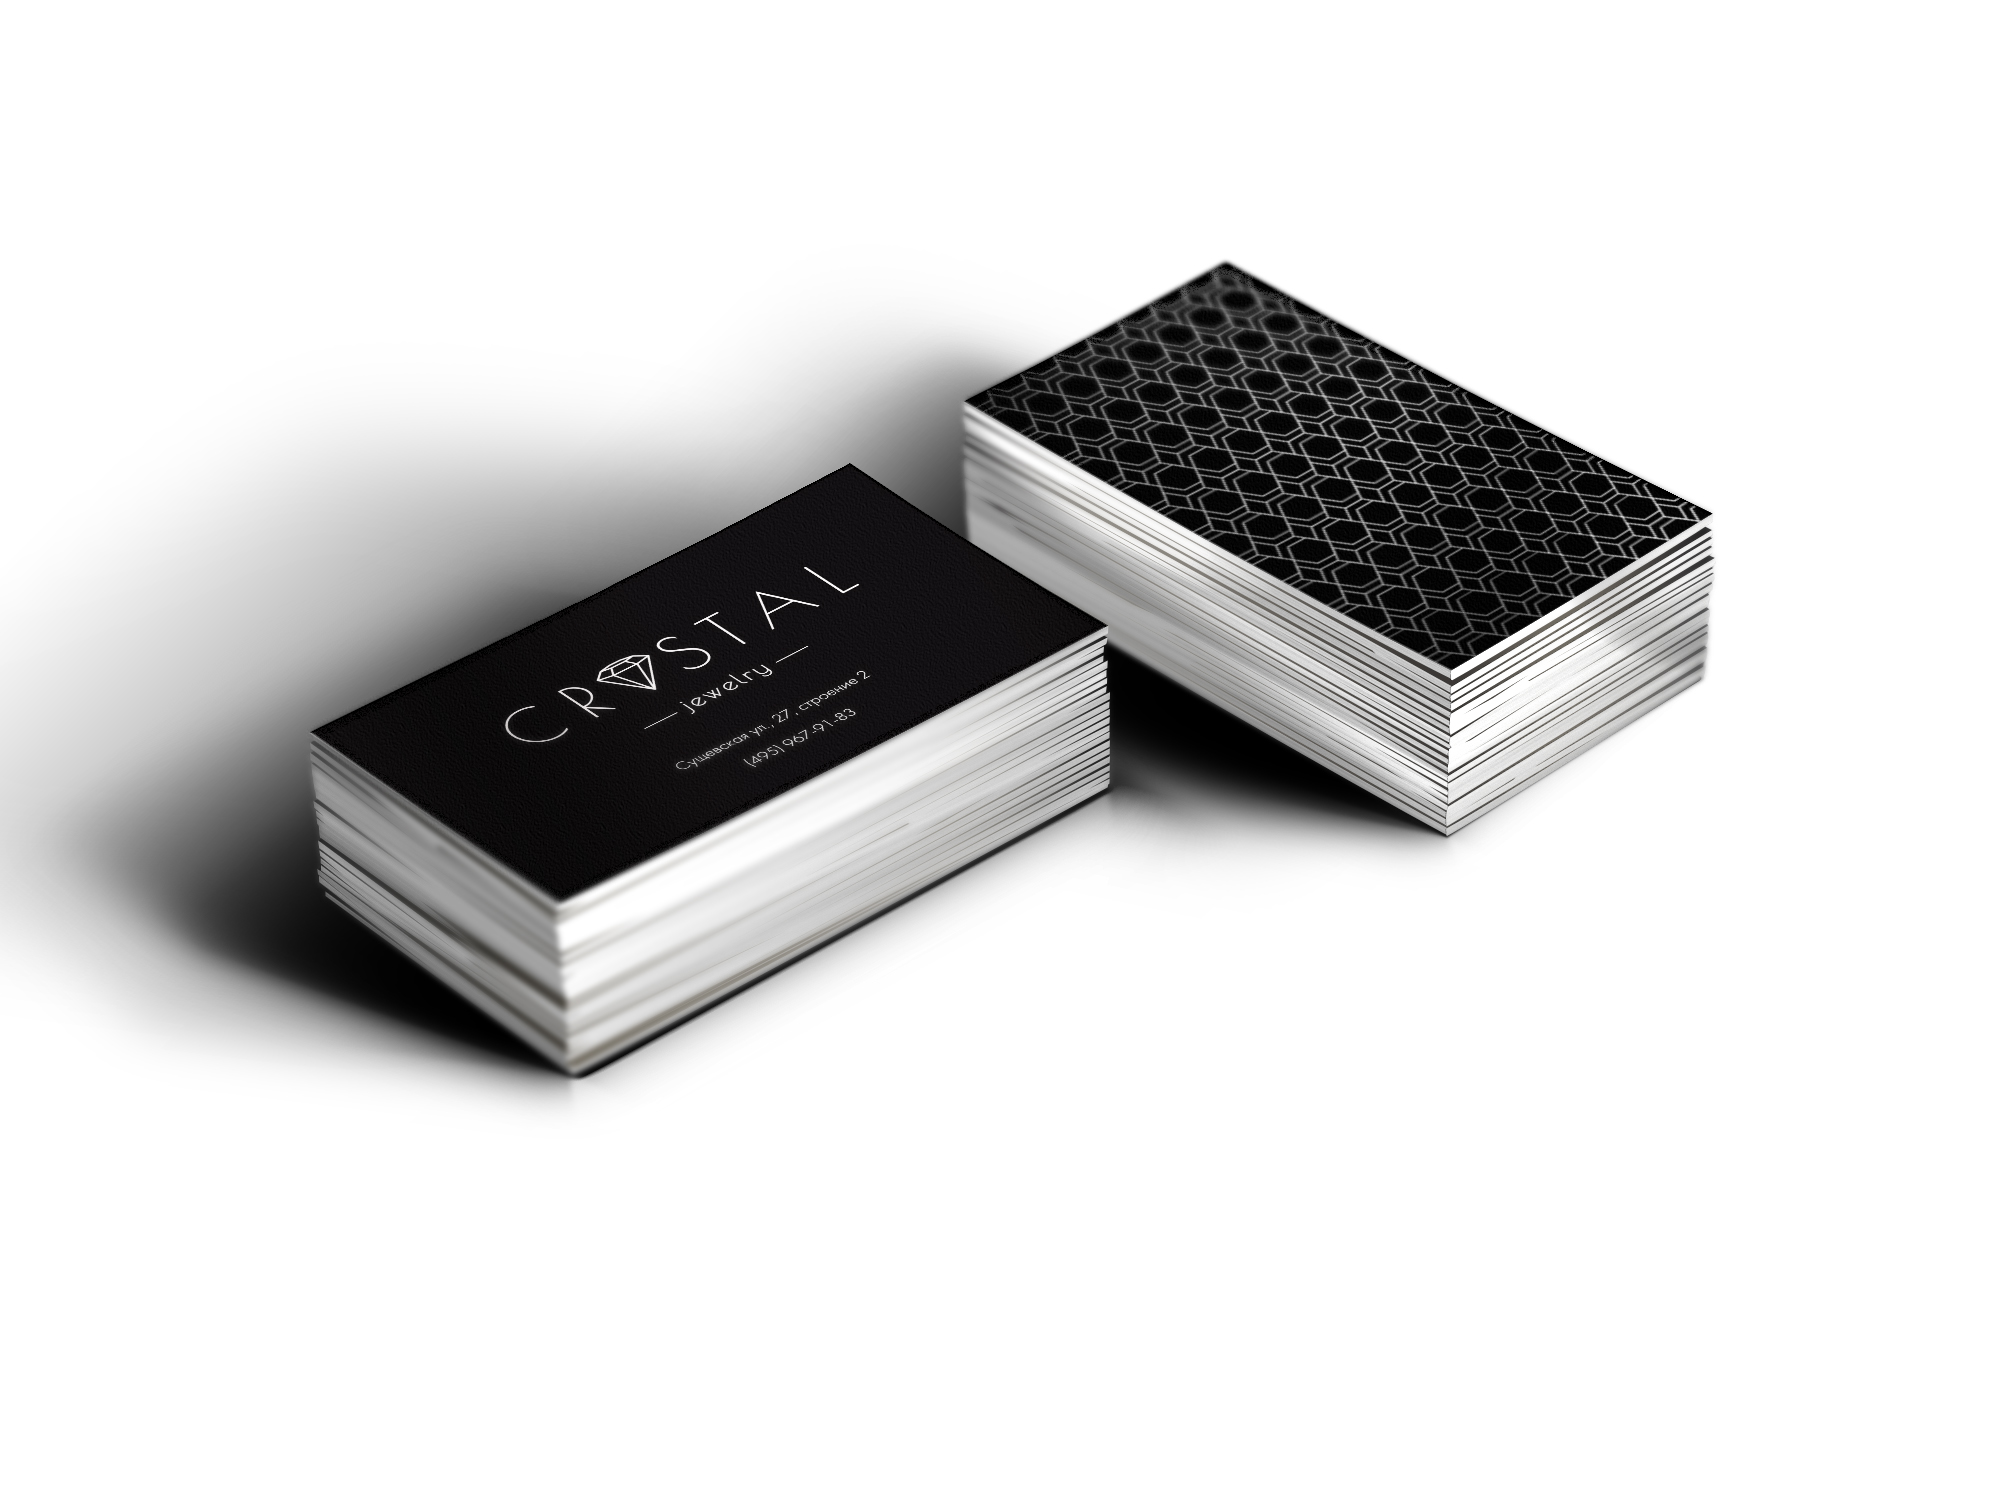 Business-card-mock-up-vol13.jpg